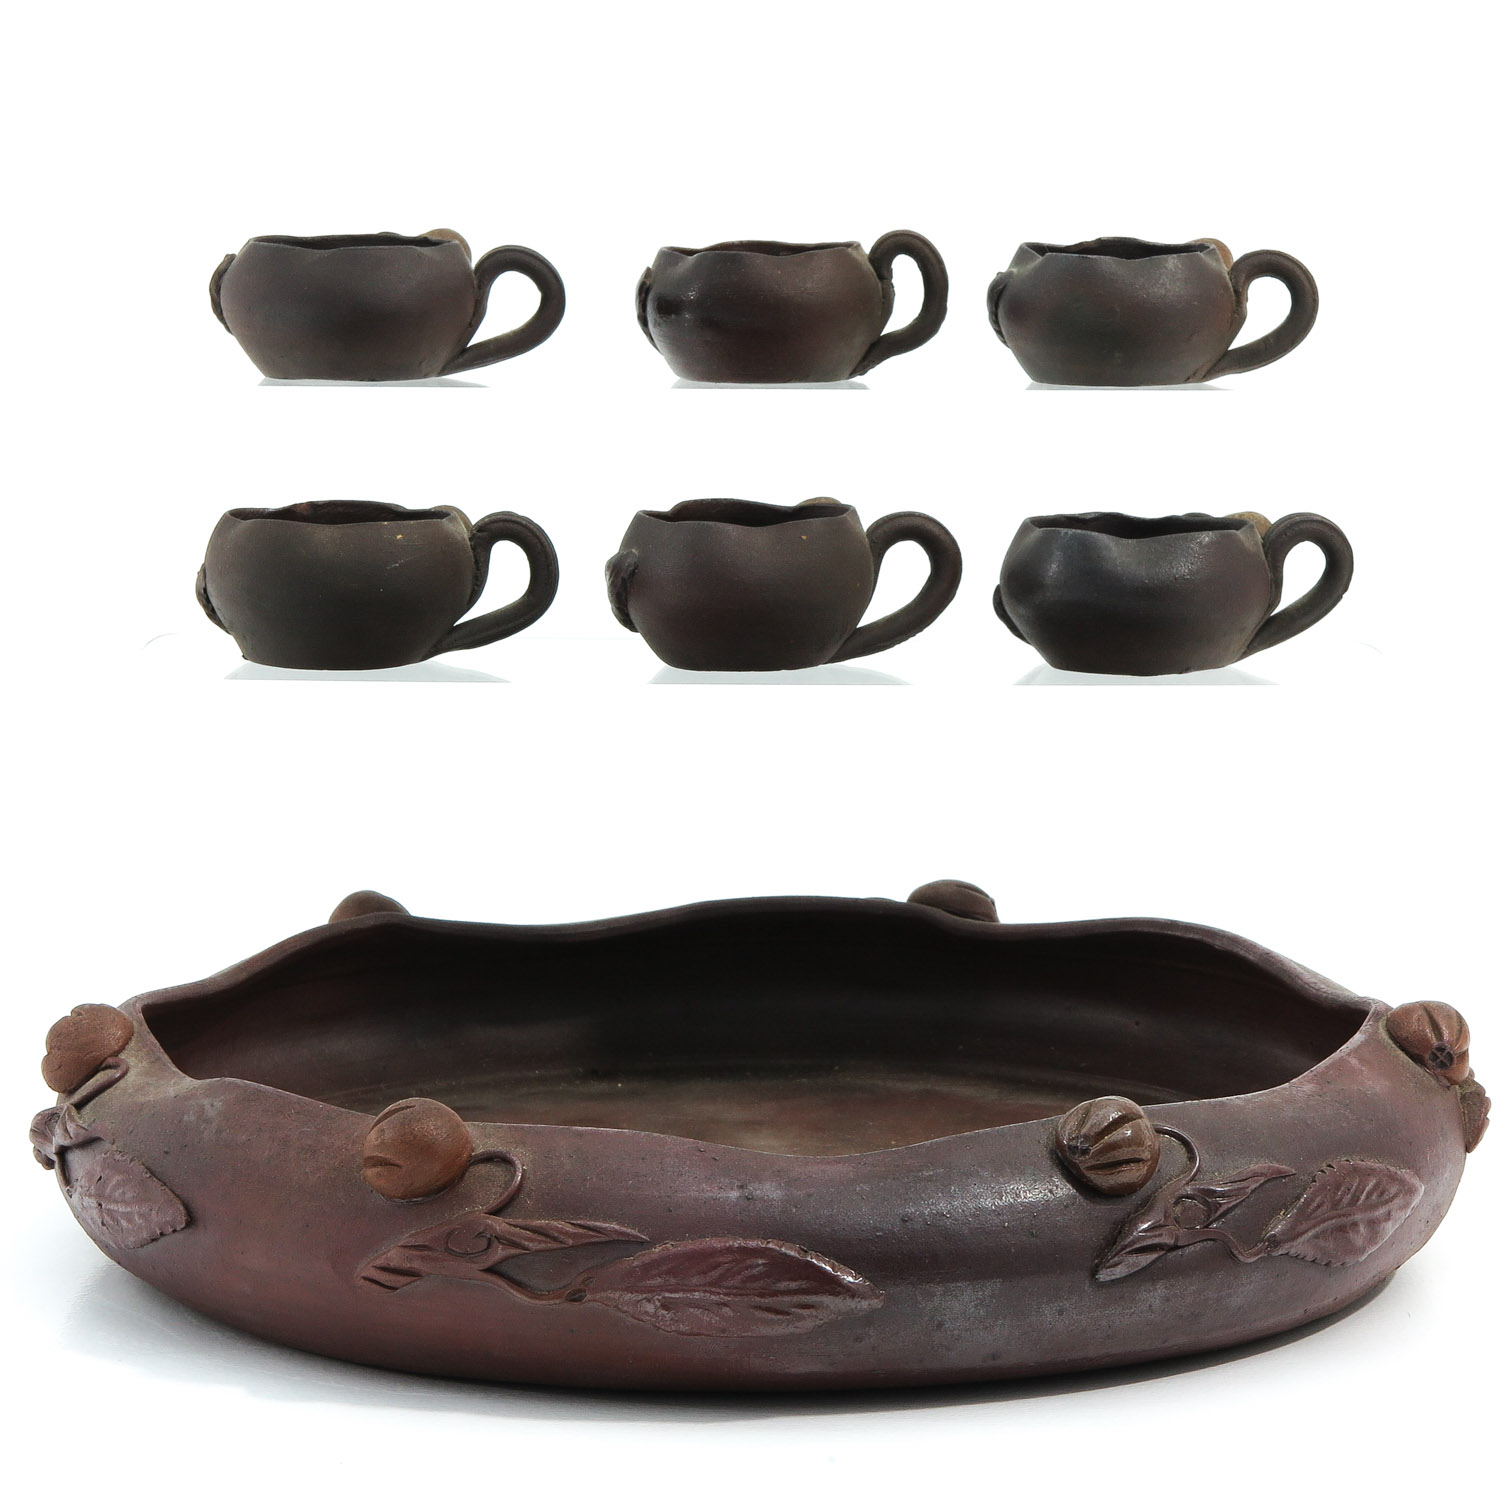 A Yixing Tray and 6 Cups - Image 3 of 10